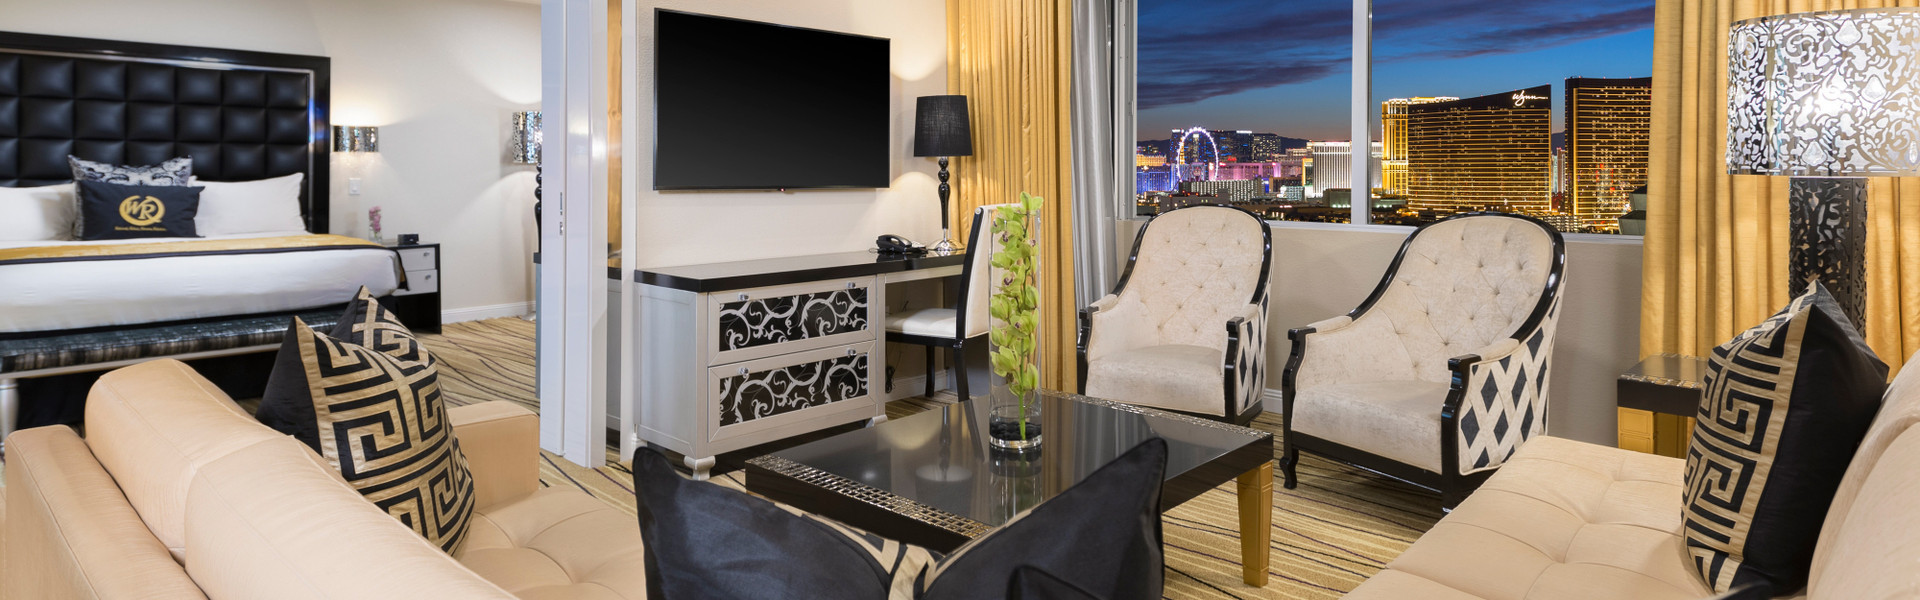 Luxury Las Vegas Hotel Suite At Westgate Las Vegas Resort